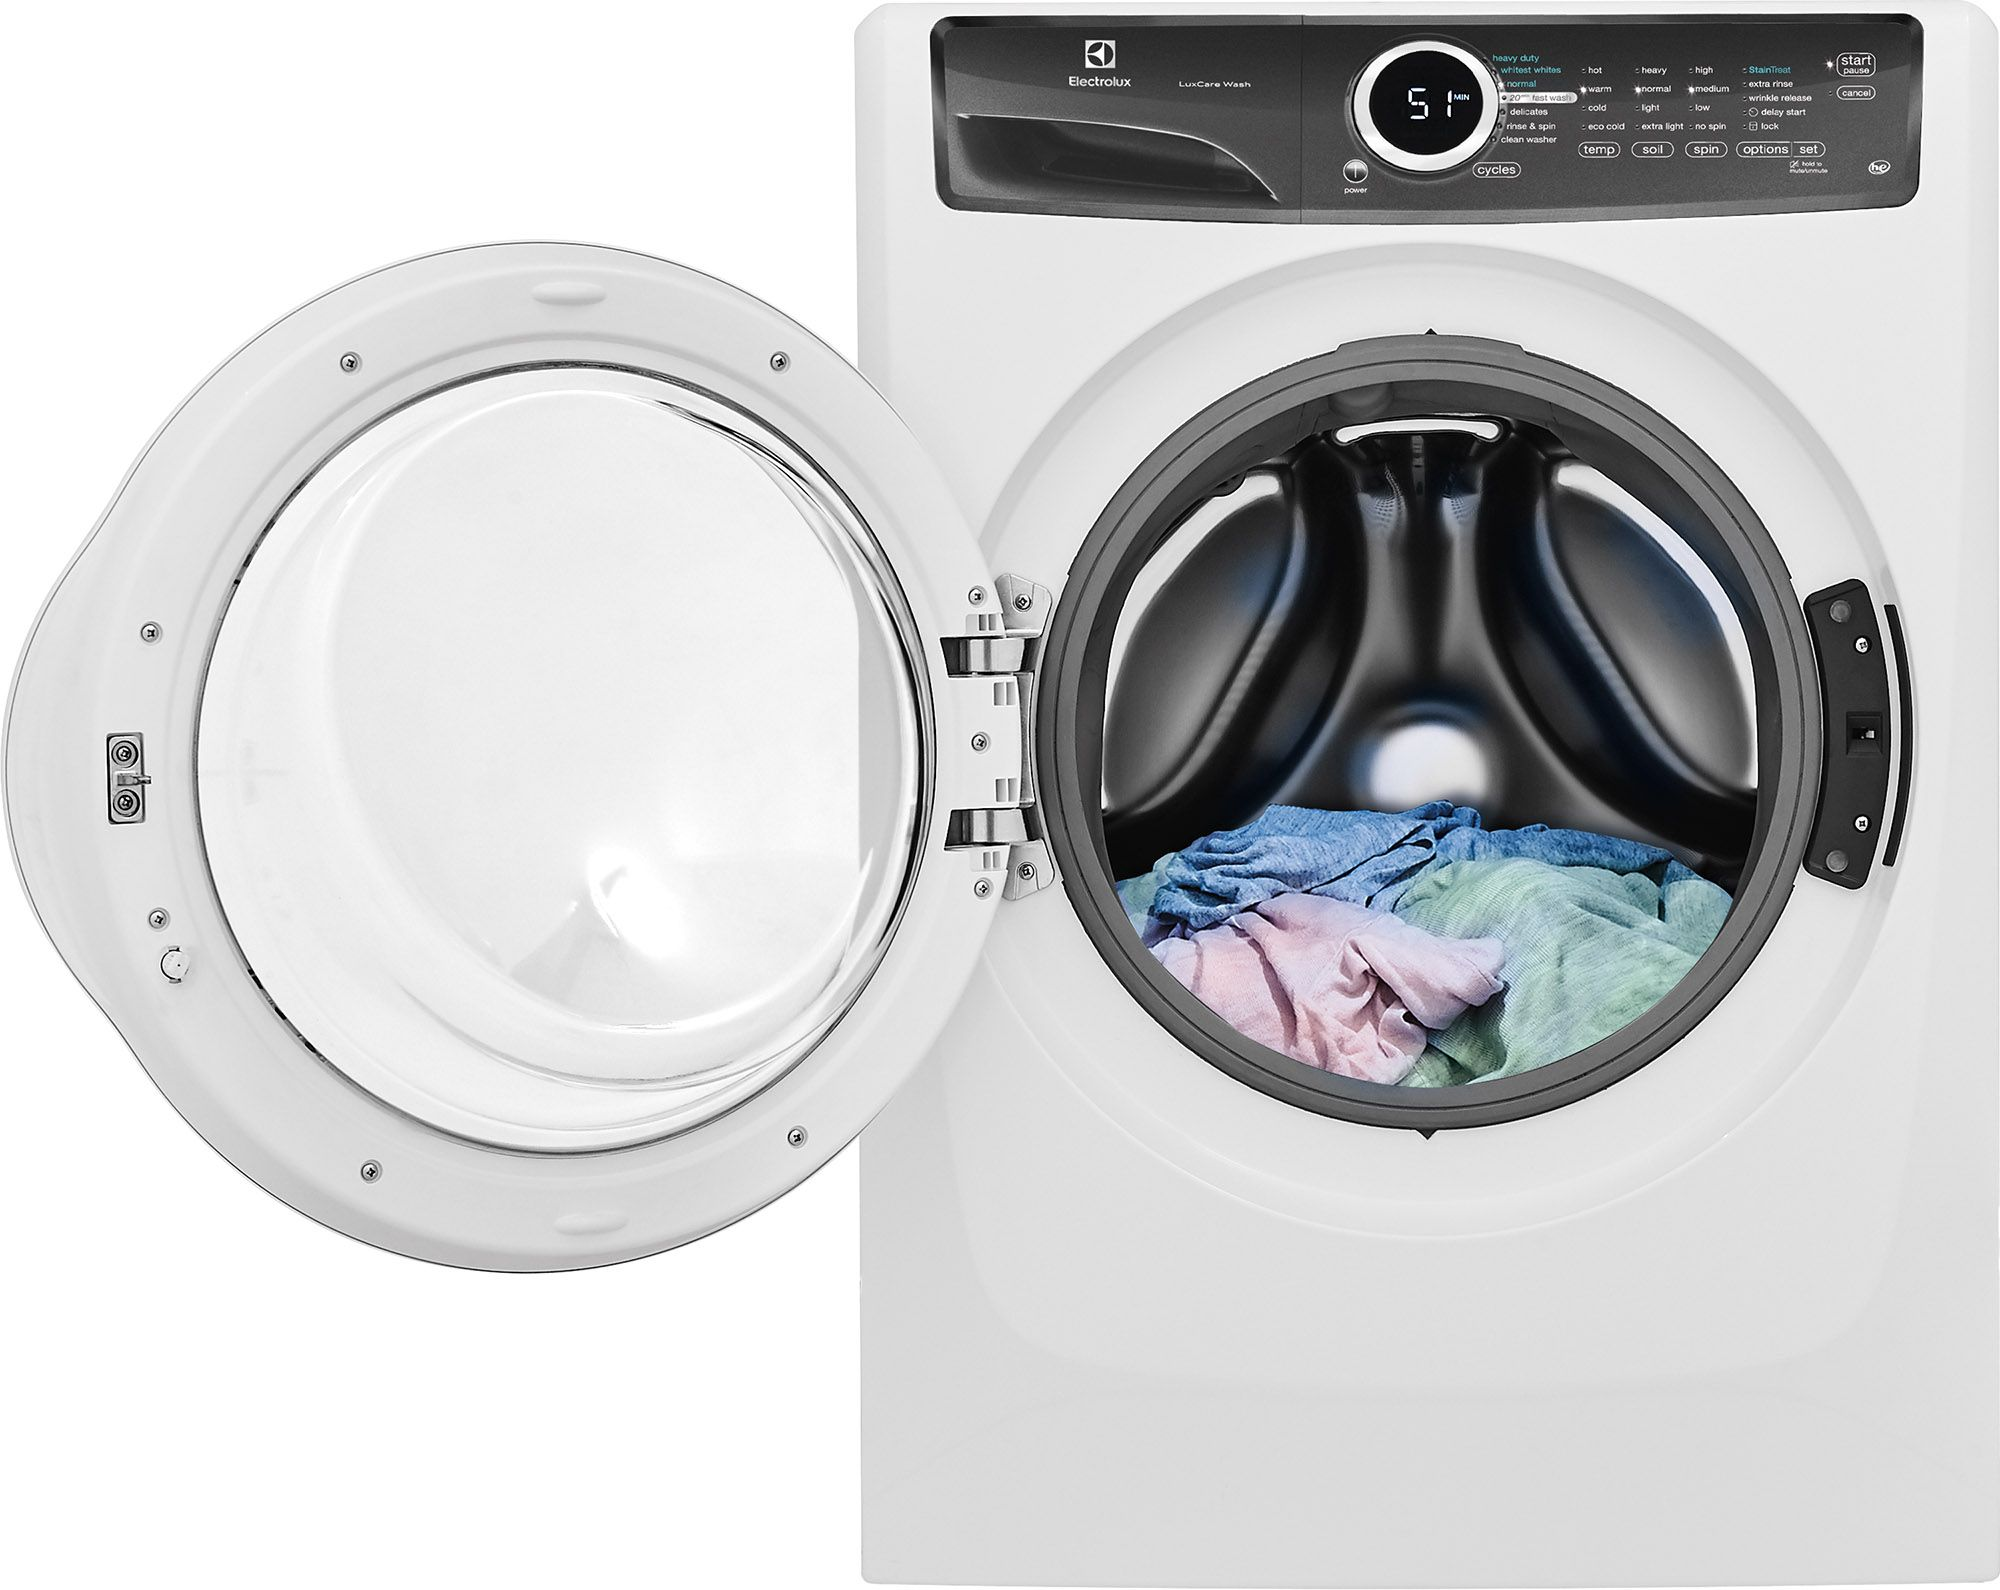 Electrolux 400 Series Front Load Washer White Eflw417siw White With 4 3 Cu Ft Capacity 15 Minute Fast Wash A Front Load Washer Laundry Laundry Appliances